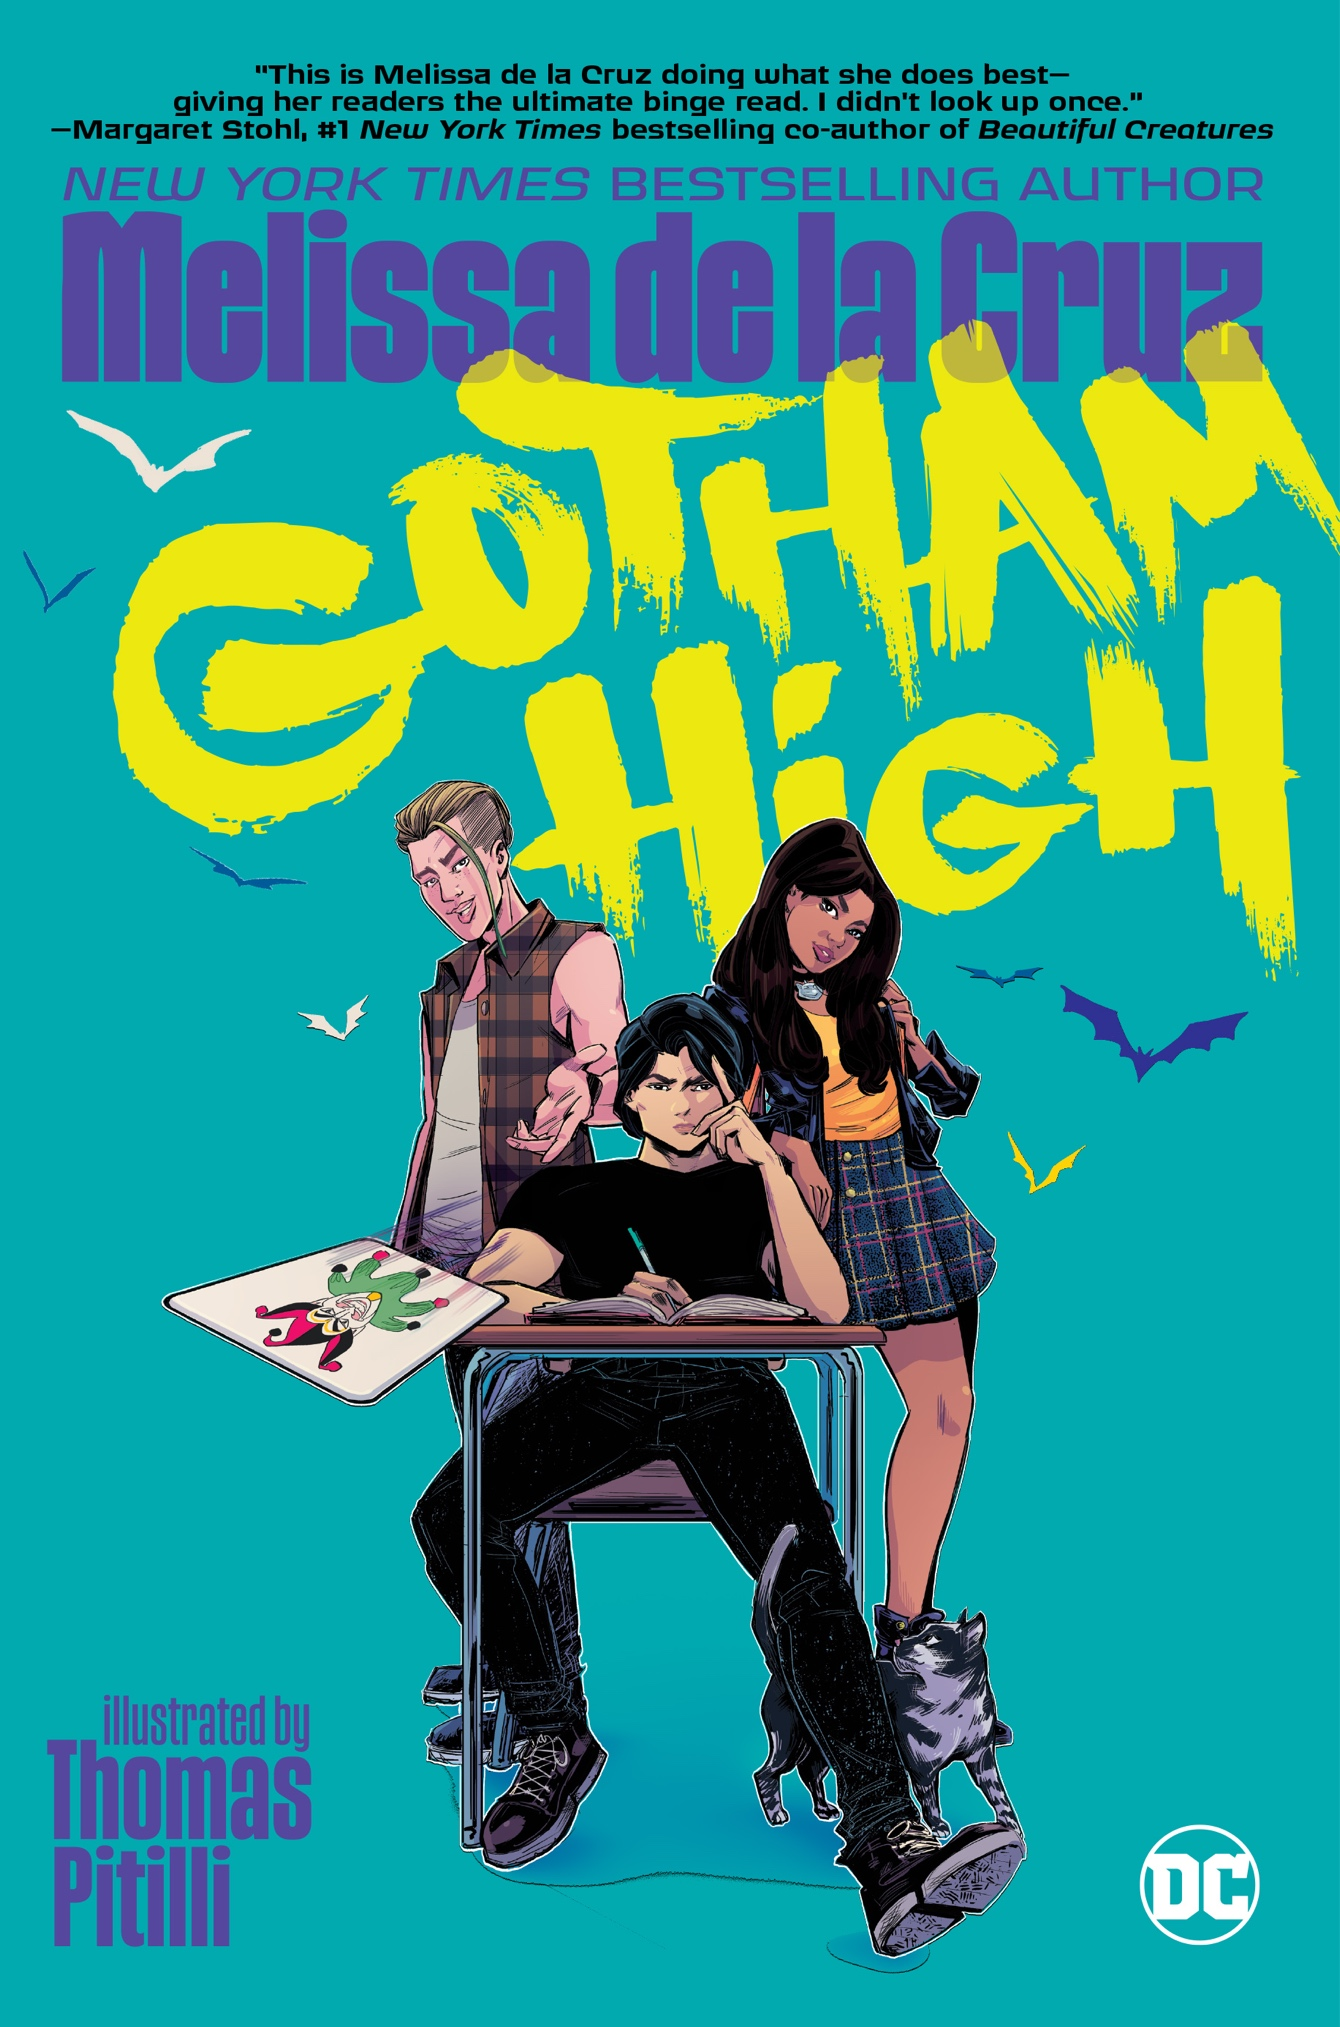 DC Comics debuts YA graphic novel 'Gotham High' trailer